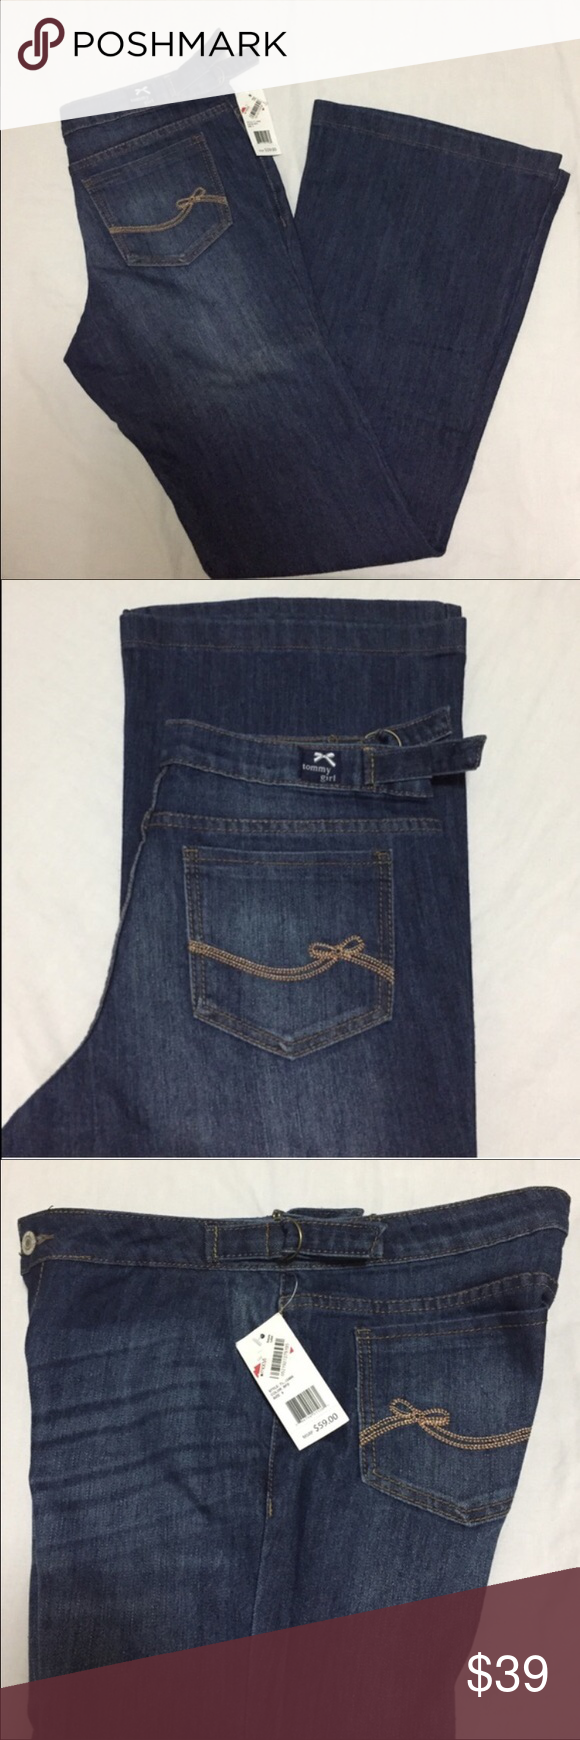 Blue jeans New with tag tommy girl wide bootcut blue jeans 👖 macys Jeans Boot Cut